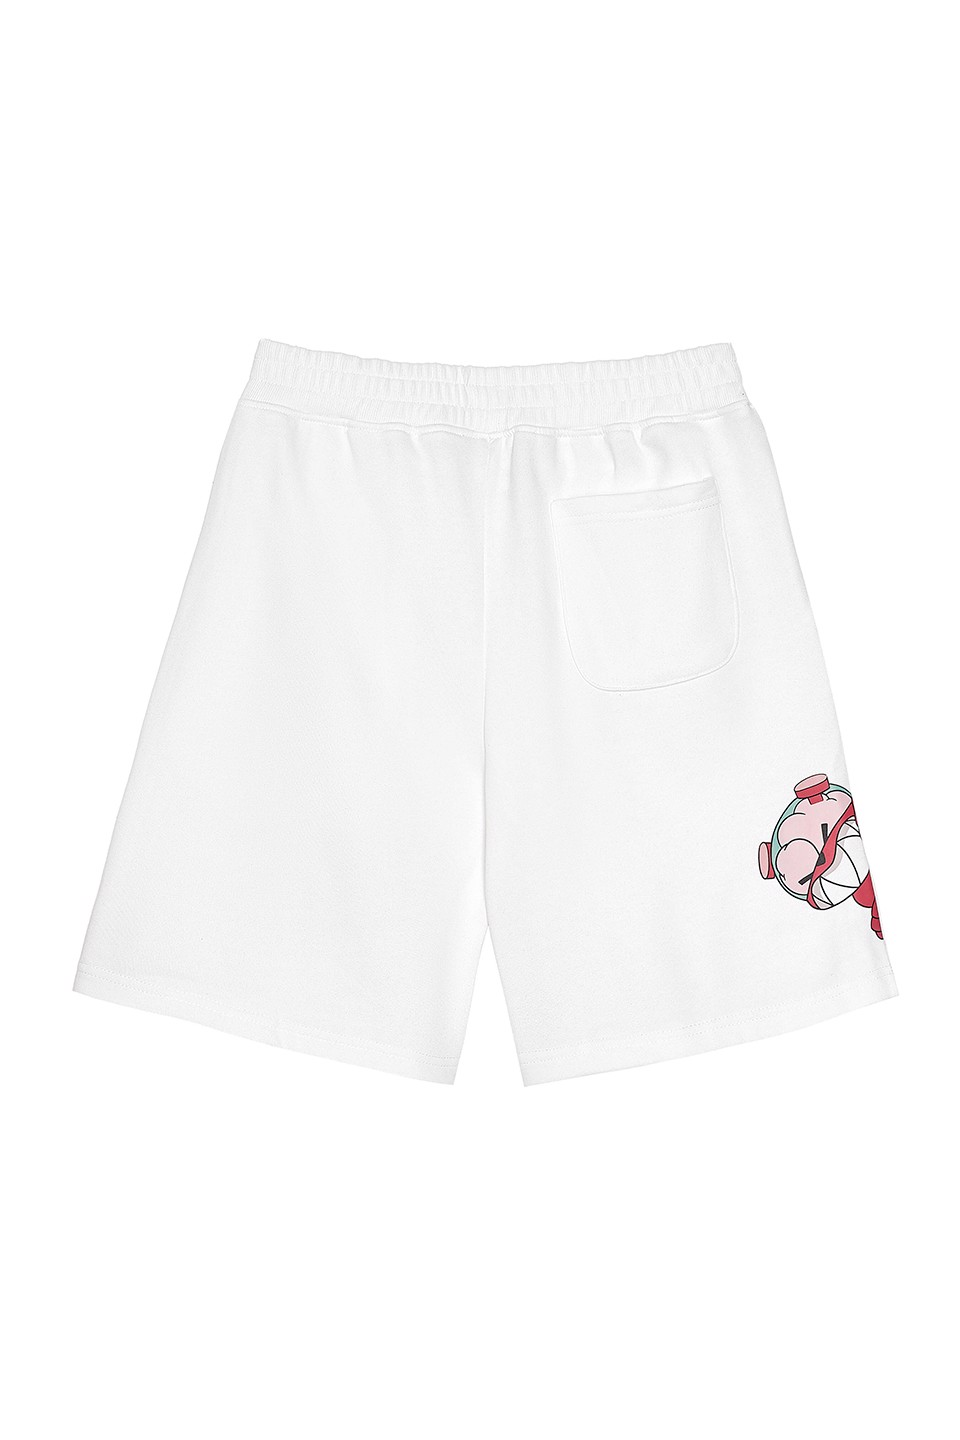 Tobekind - 02 - Short Pant - White